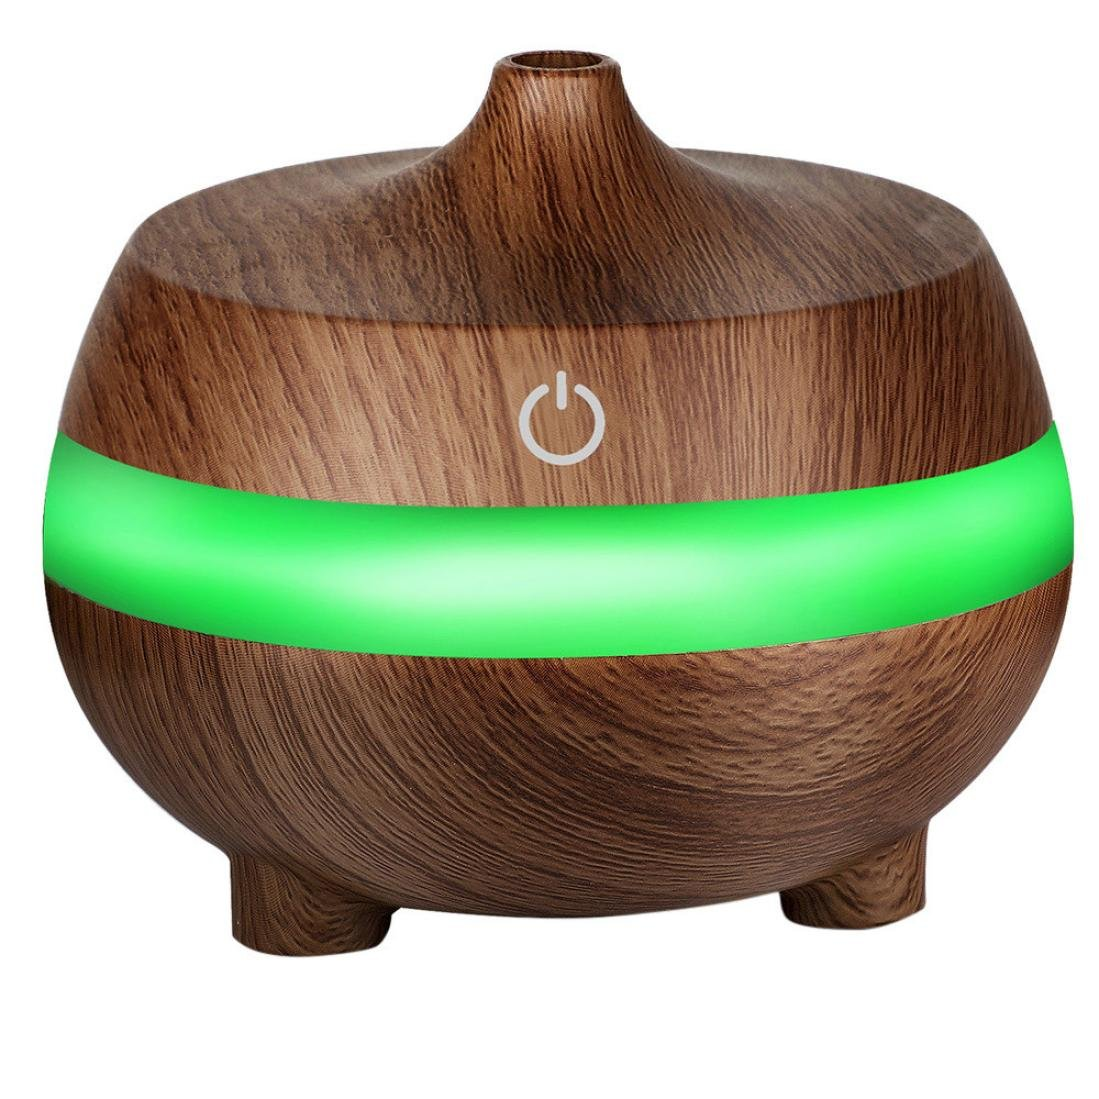 USB Air Aroma Essential Oils Diffuser - Saihui 300ML LED Ultrasonic Classic Wood Grain Aroma Aromatherapy Humidifier 7 Colors Lights Air Humidifiers Purifiers for Baby Room, Bedroom, Office (Black)